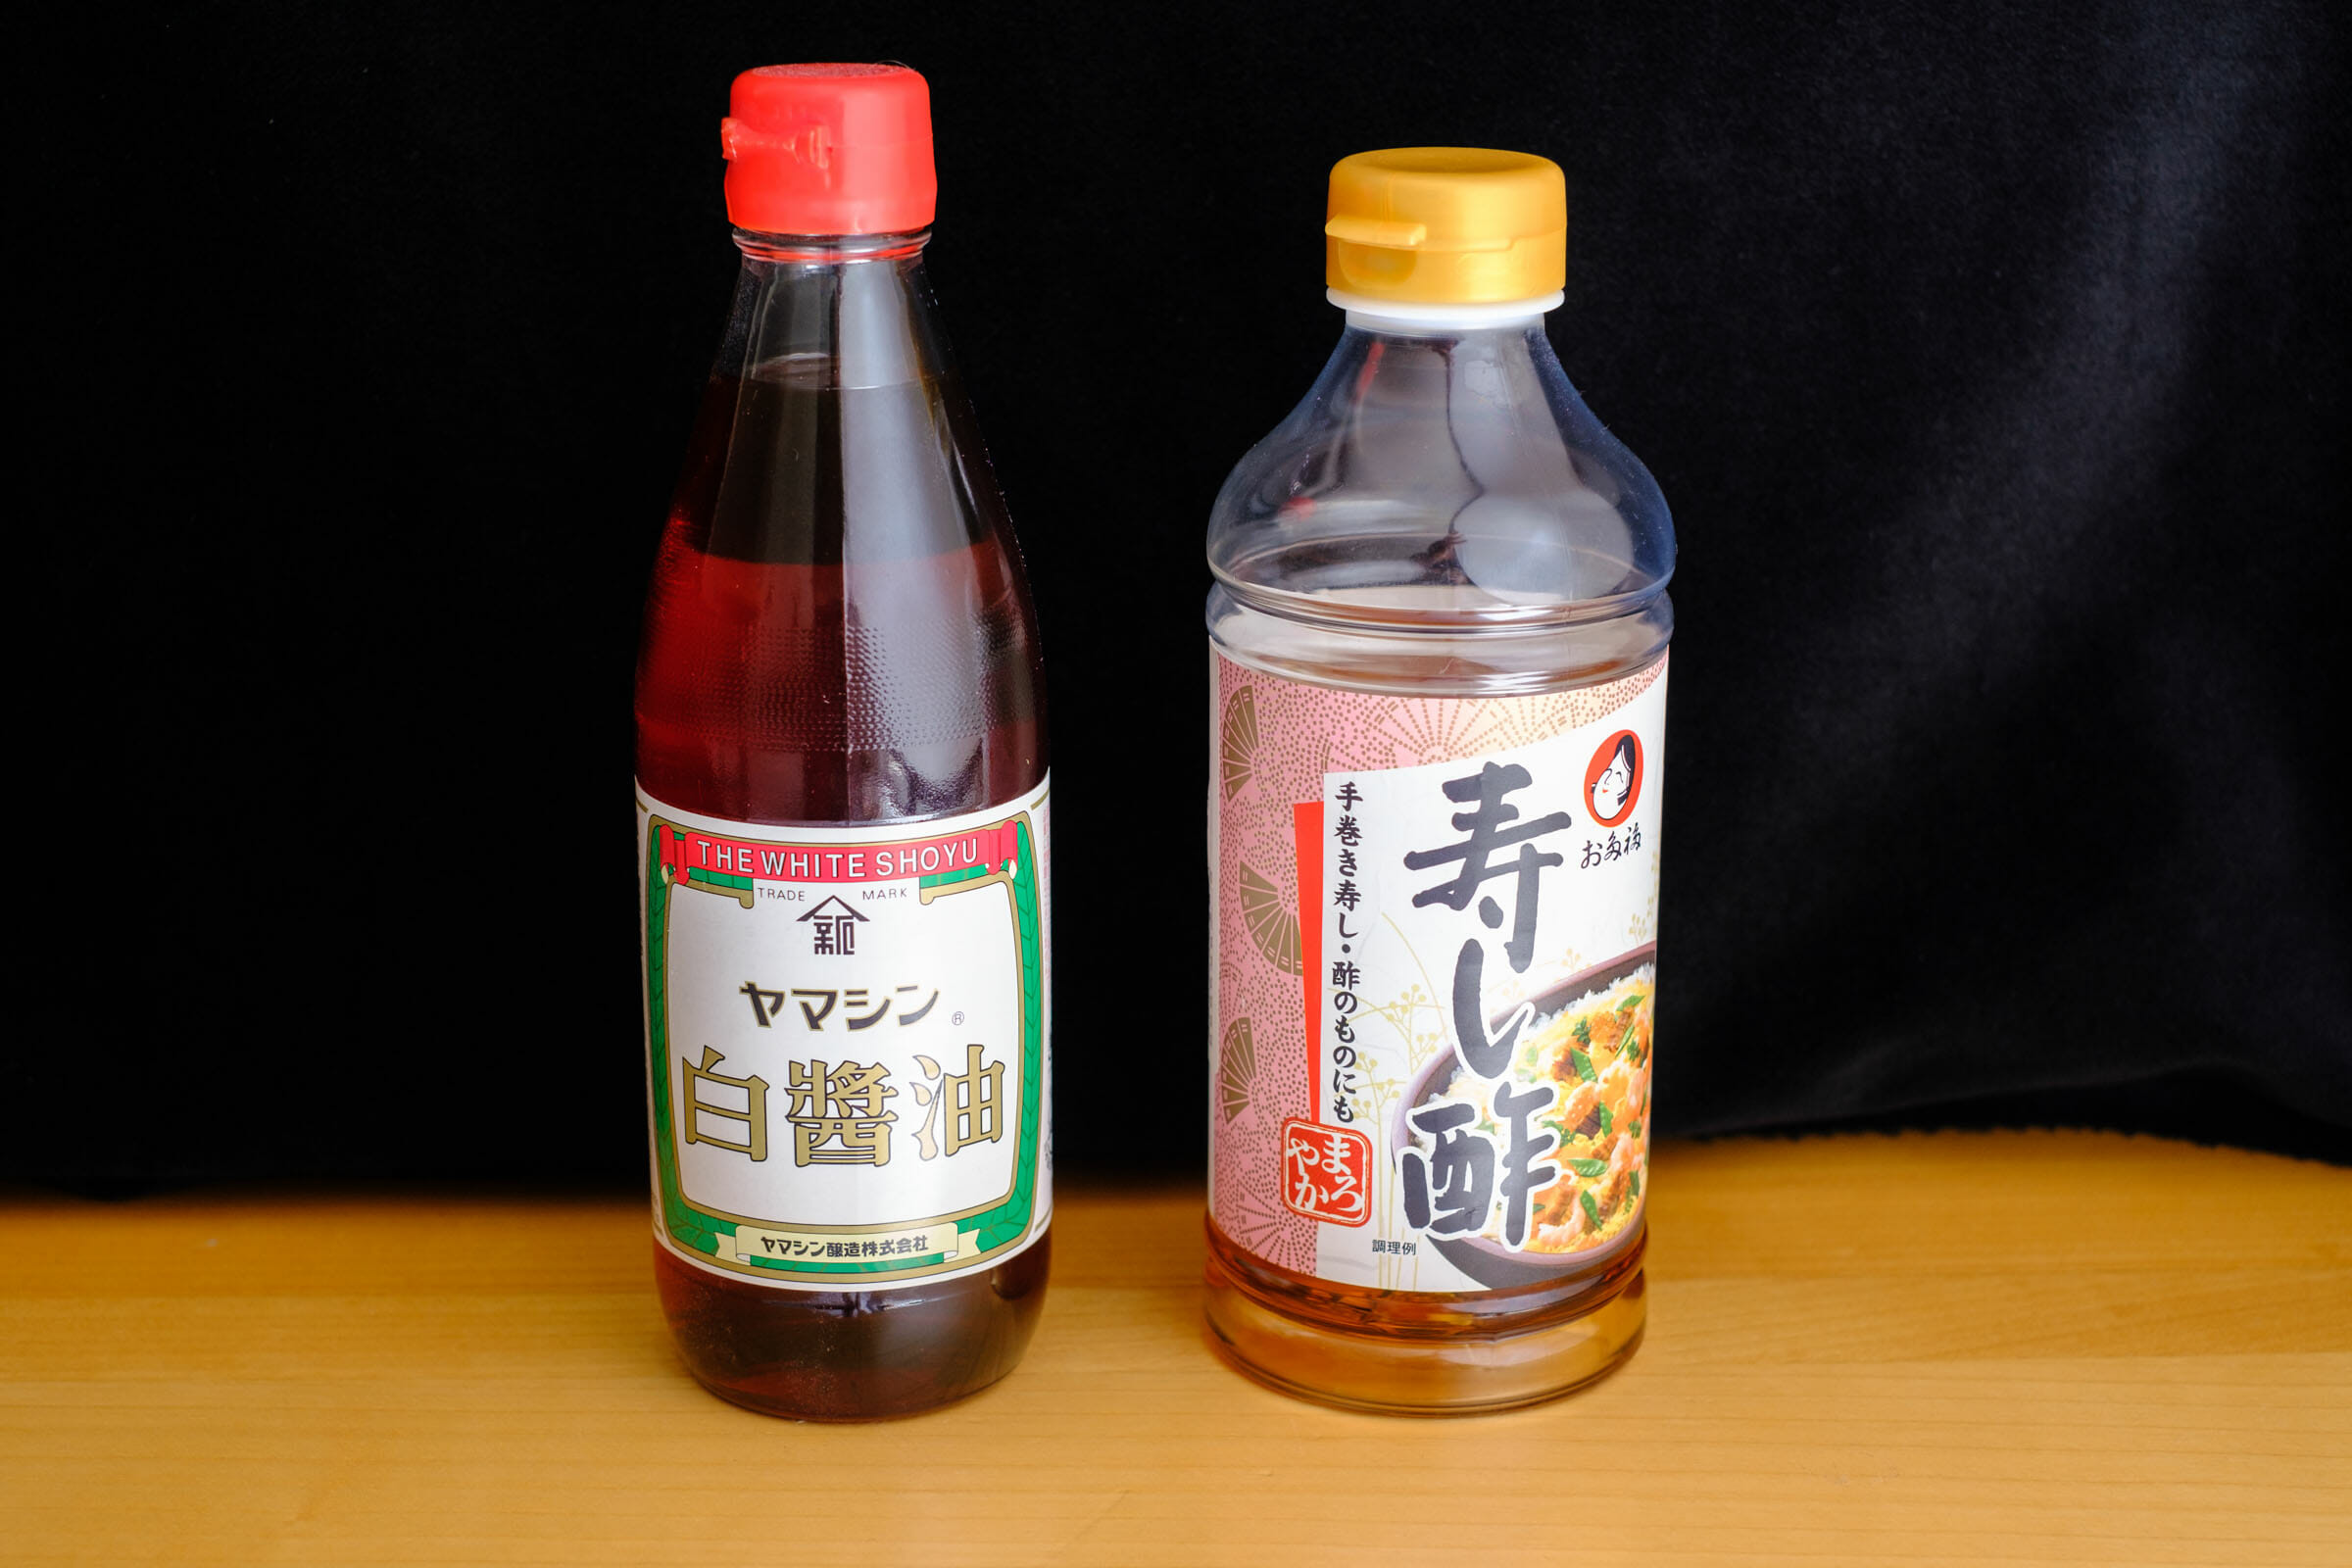 Soy sauce and sushi vinegar